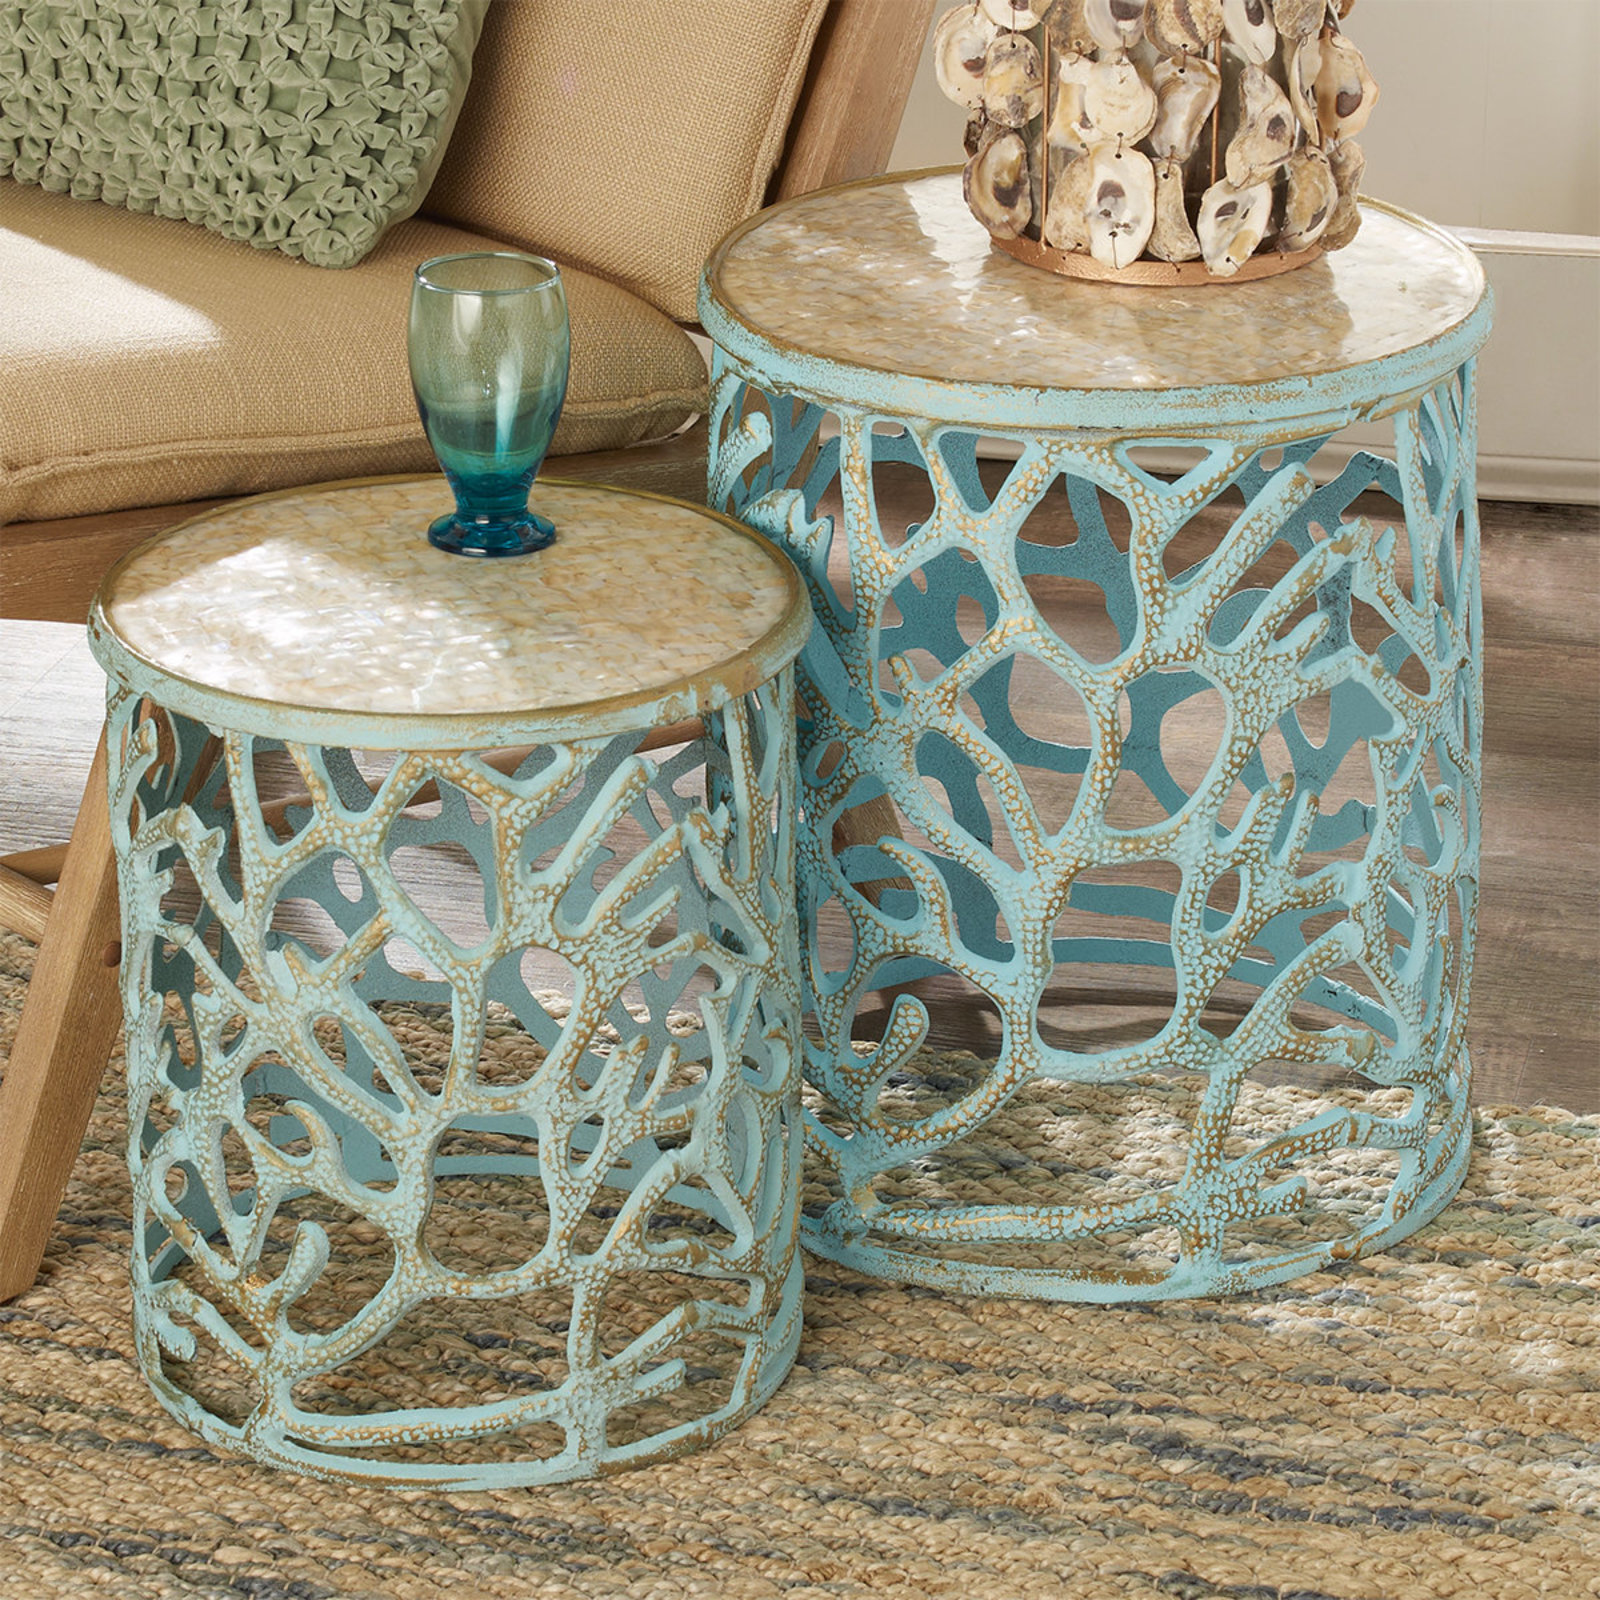 mother pearl coral accent tables shades light table green pear weathered blue barn dining nesting cocktail set elm chair wooden legs white mirrored console mats wood slab seater